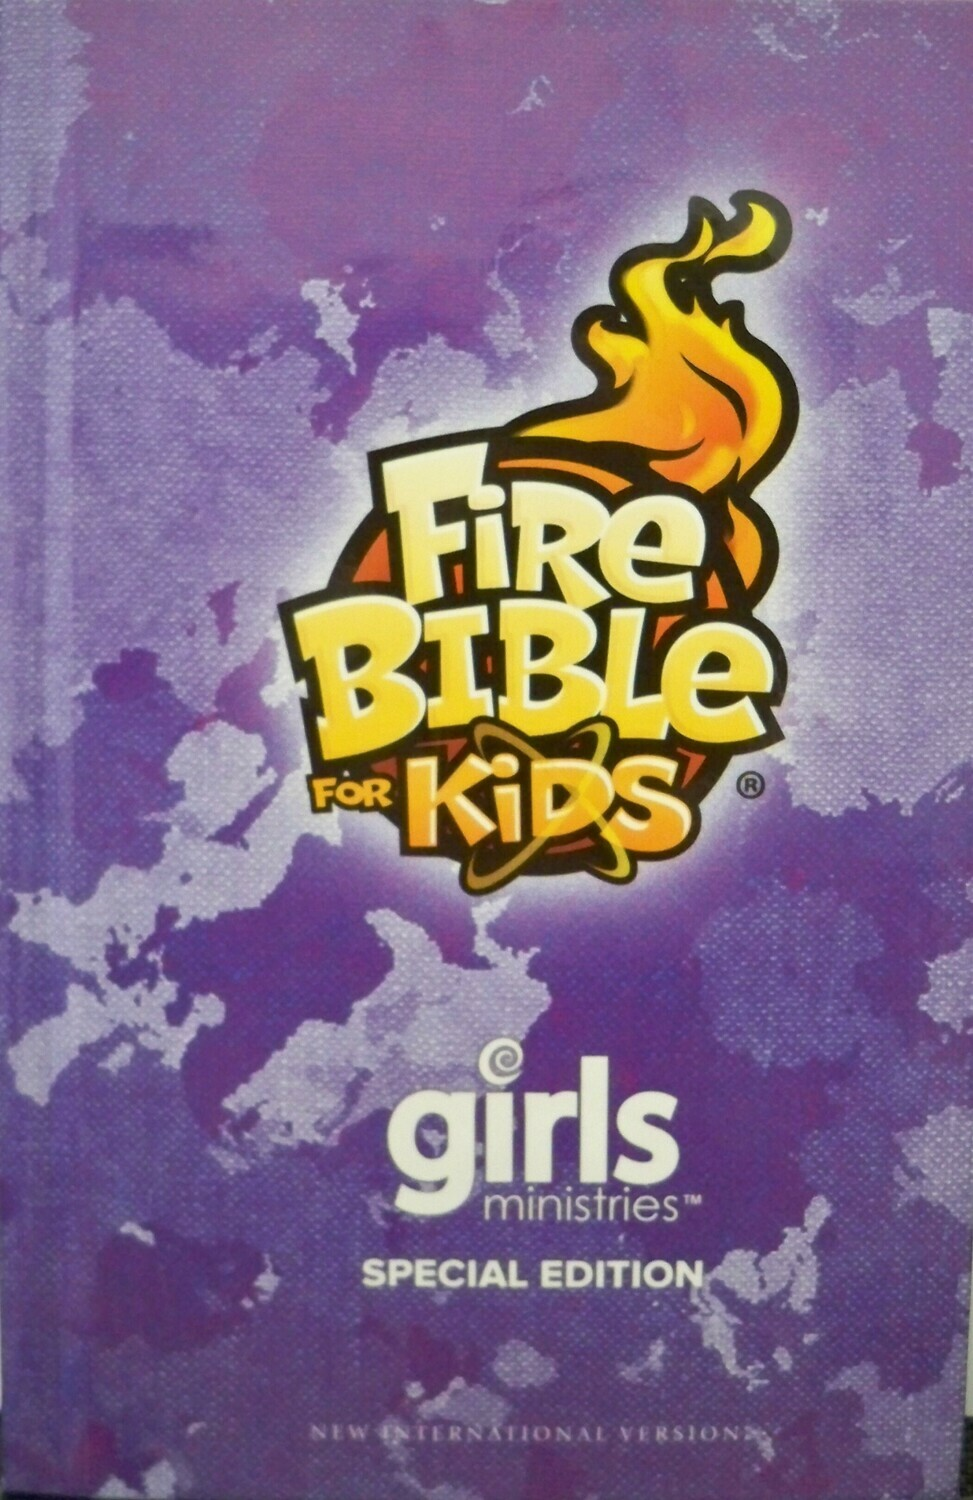 FireBible for Kids Girls Ministry Edition (NIV) Purple  Hardcover